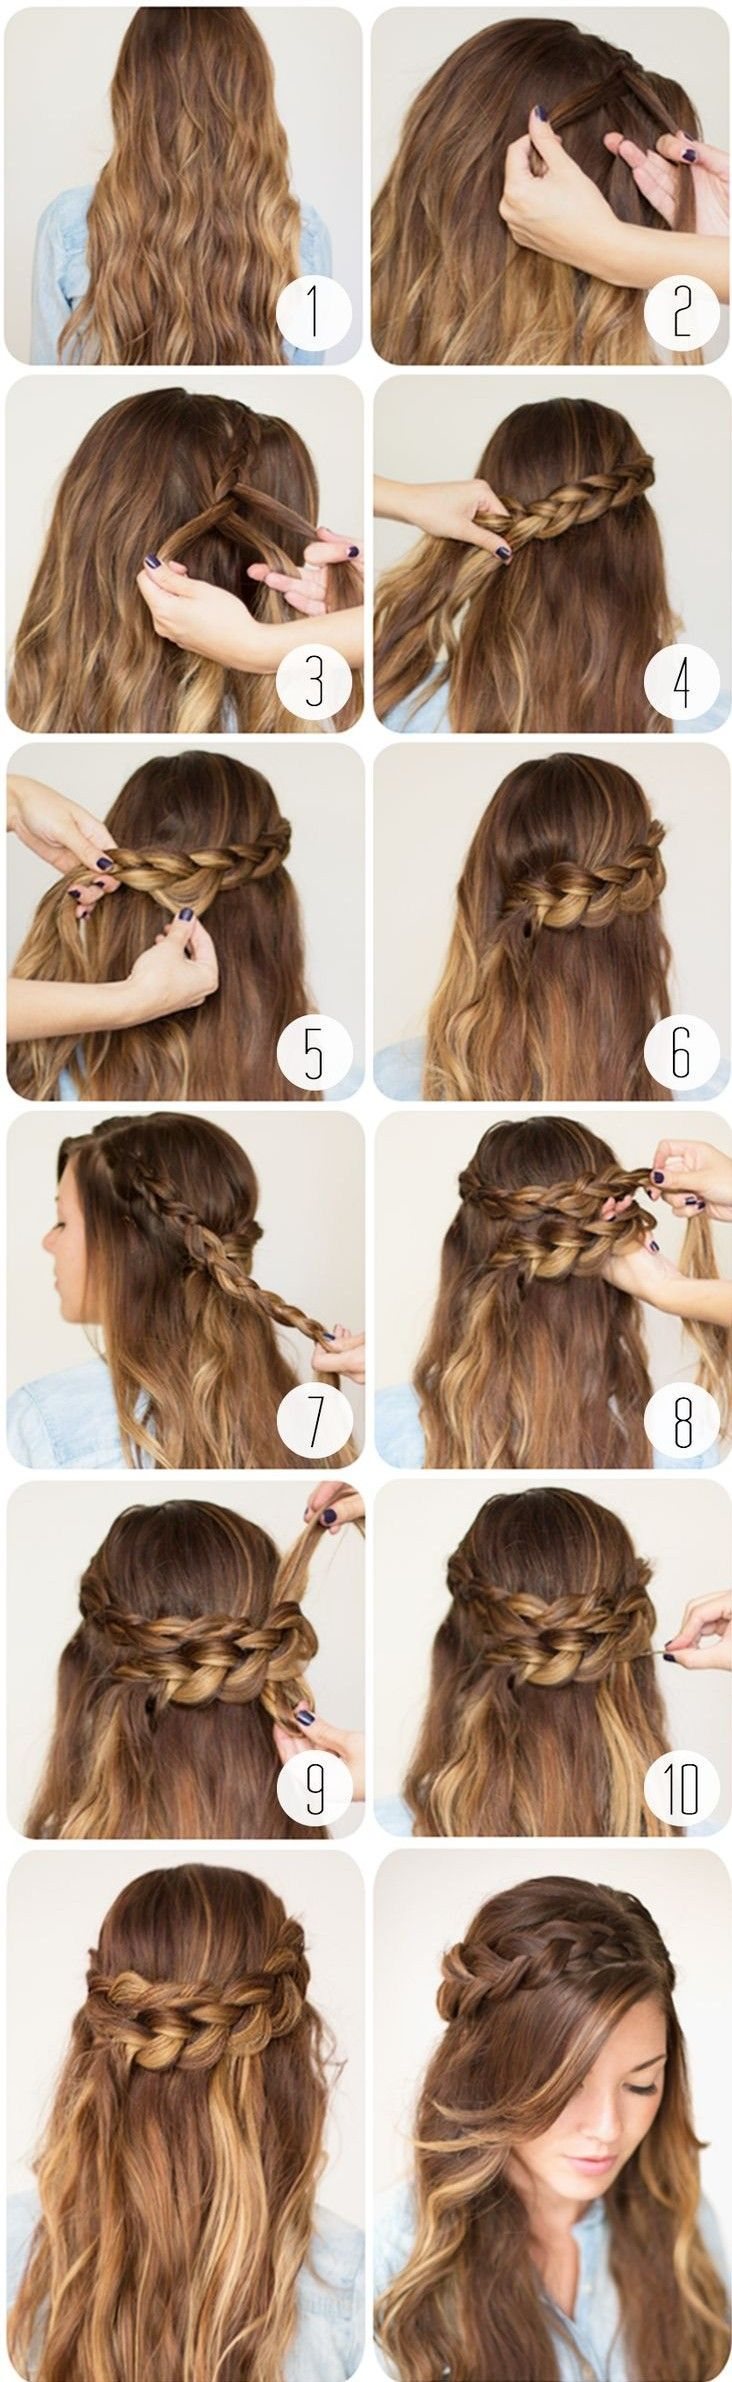 Step By Step Braided Hair Tutorials                                                                                                                                                                                 More